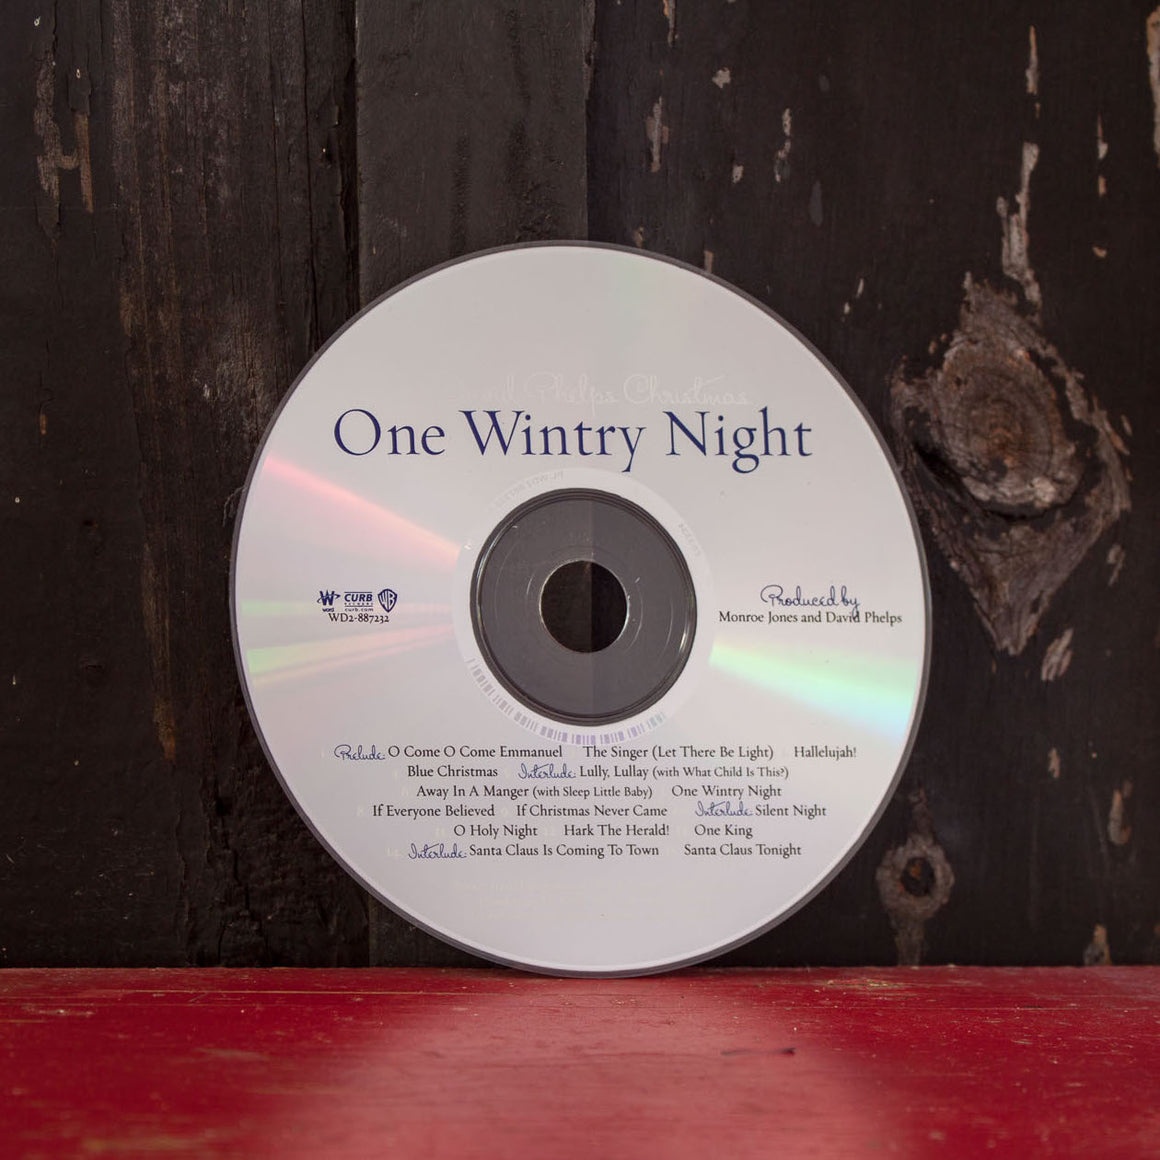 One Wintry Night CD